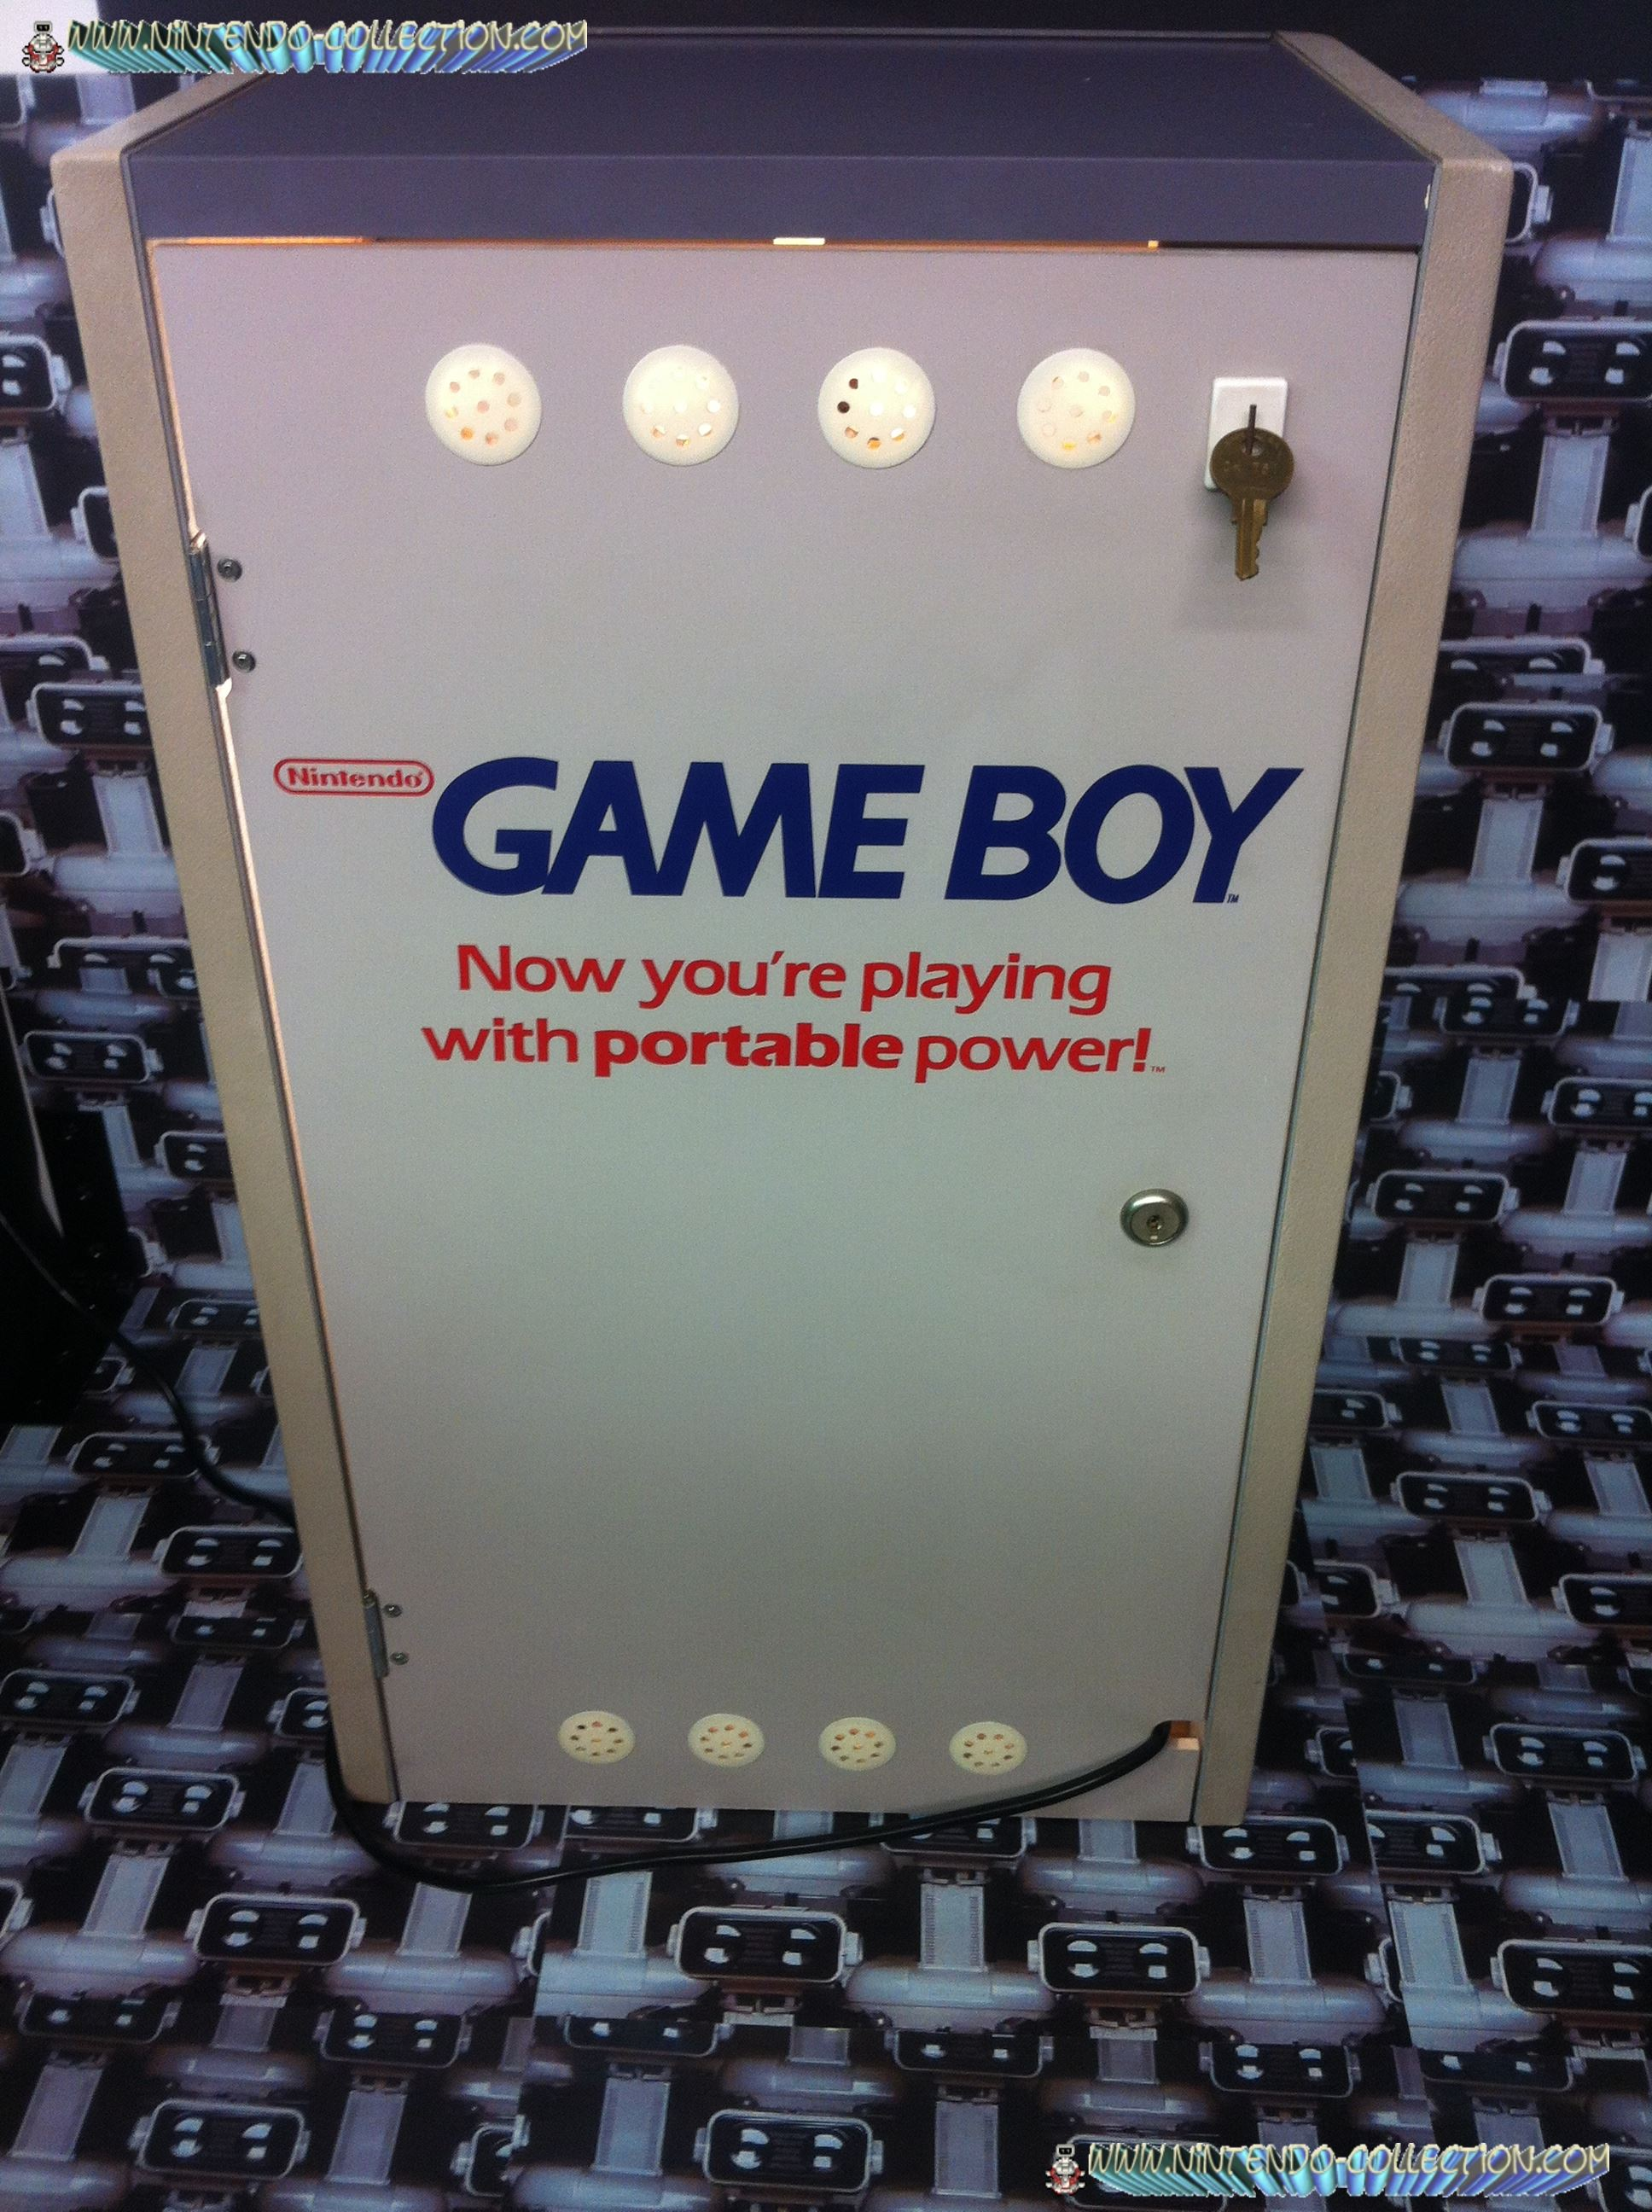 www.nintendo-collection.com - Borne demonstration Gameboy Demo Kiosk - 4